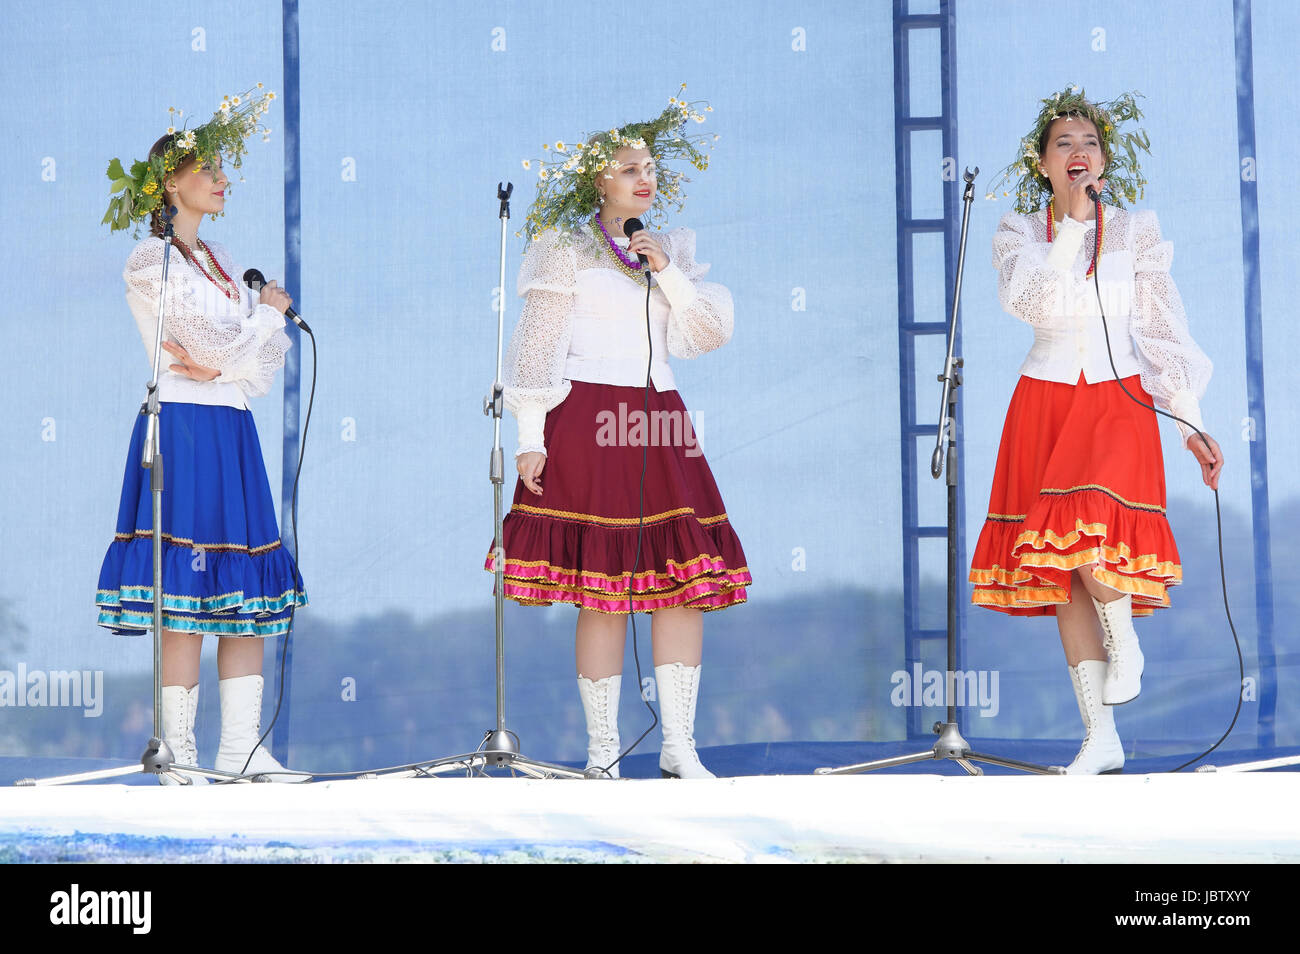 kalinka girls